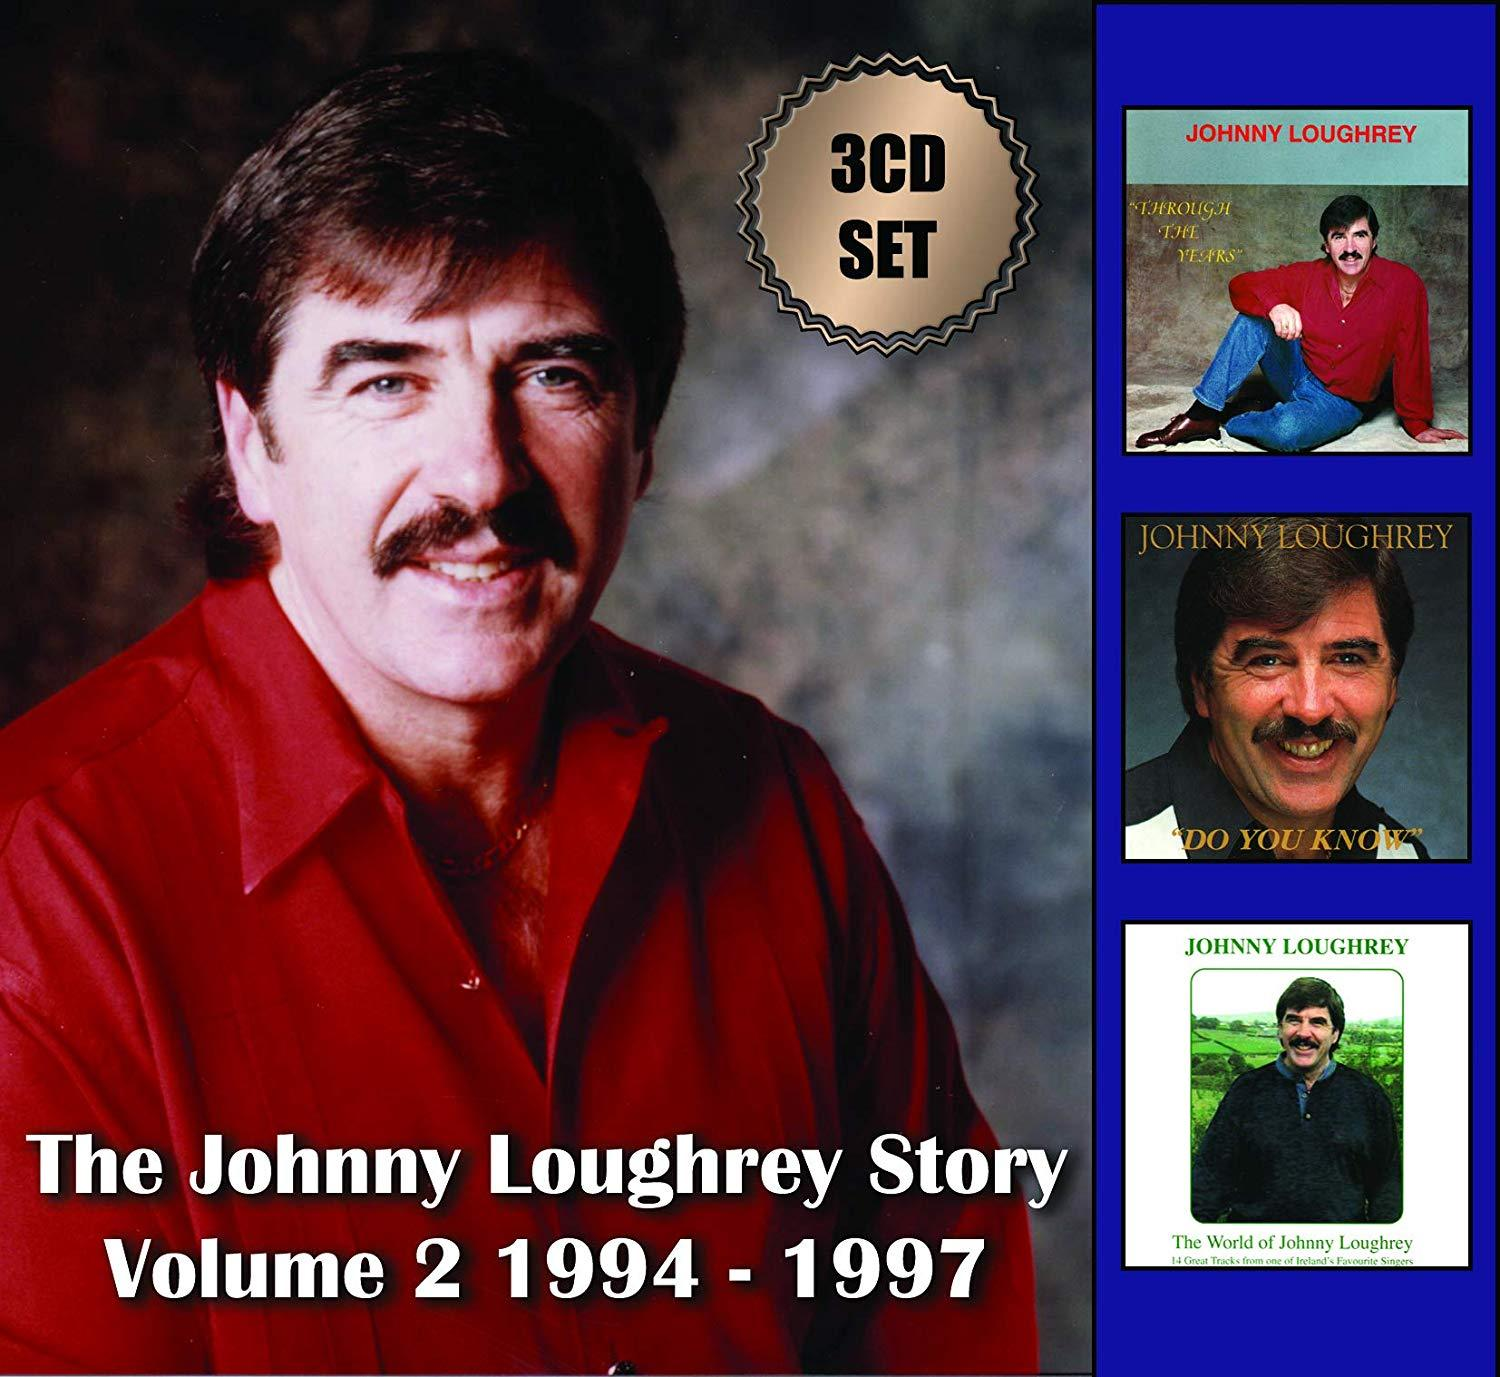 JOHNNY LOUGHREY 1994 - 1997 [CD]